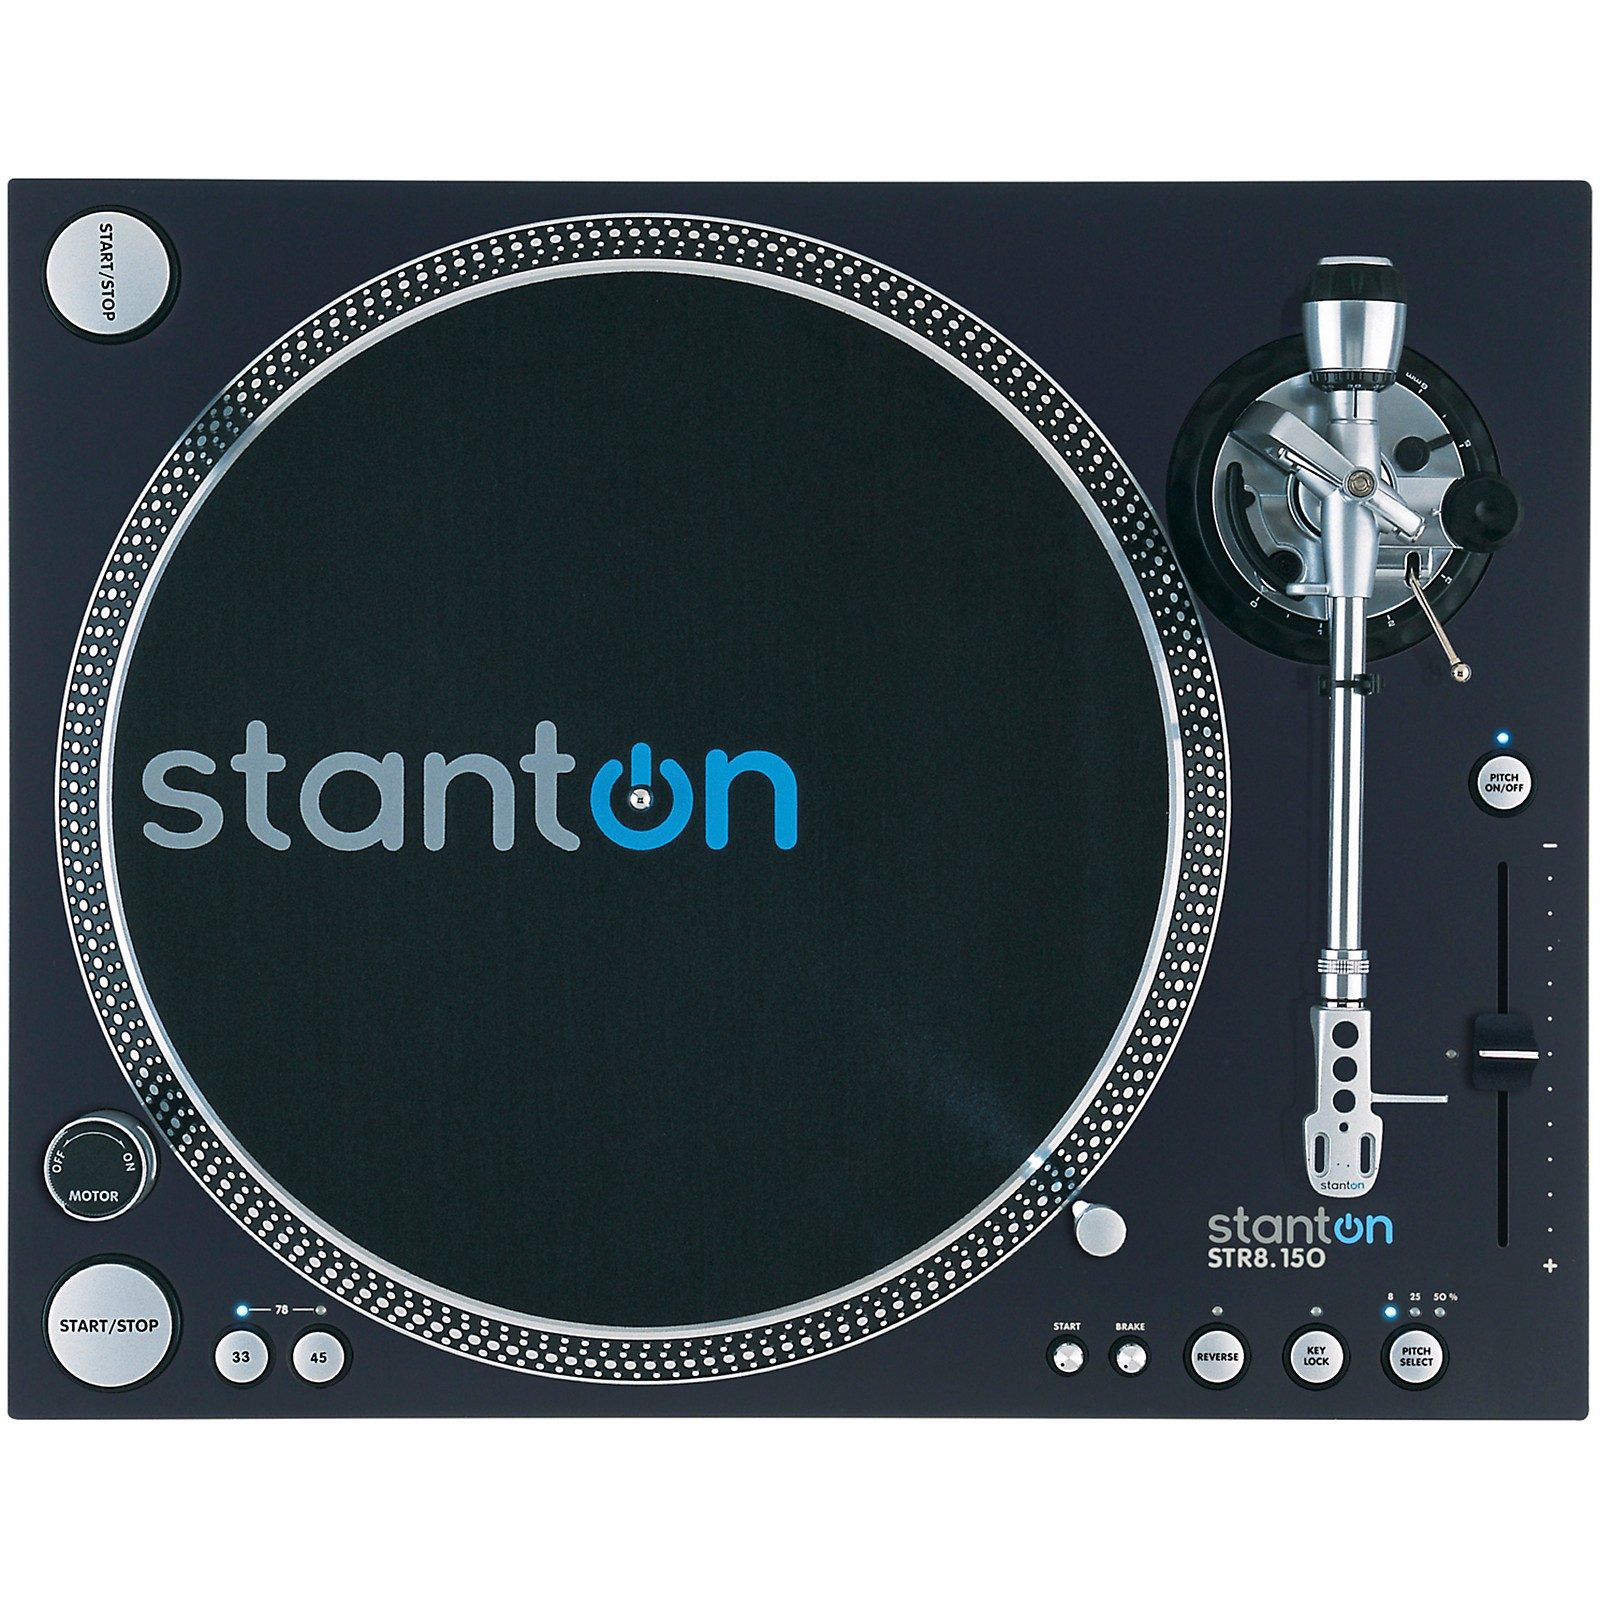 Open Box Stanton STR8.150 M2 Direct Drive Professional DJ Turntable with Straight Tone Arm